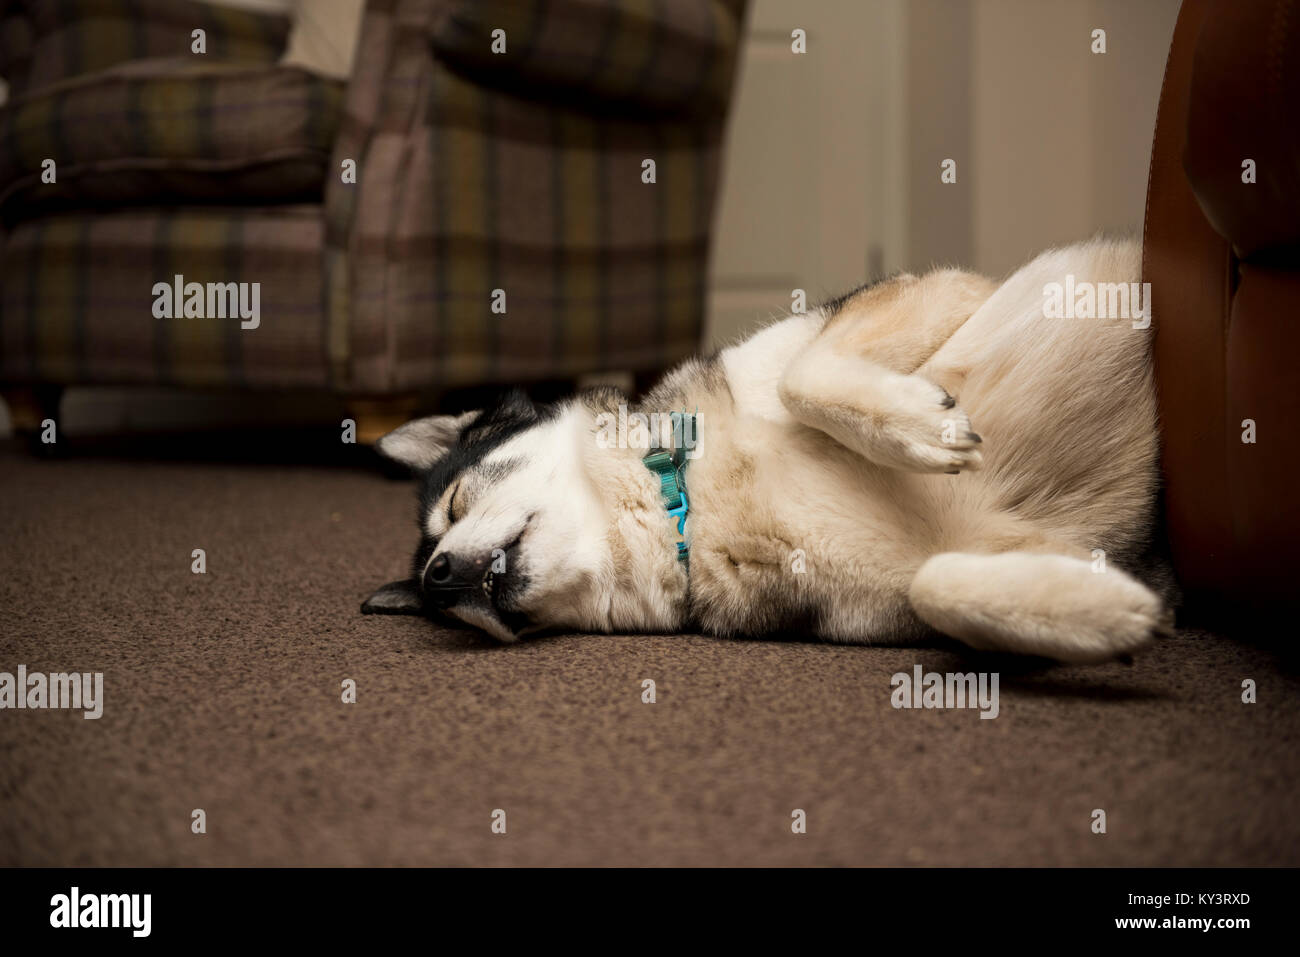 Sleeping husky dog lazing on the carpet next to settee. Paws in the air looking very relaxed. - Stock Image